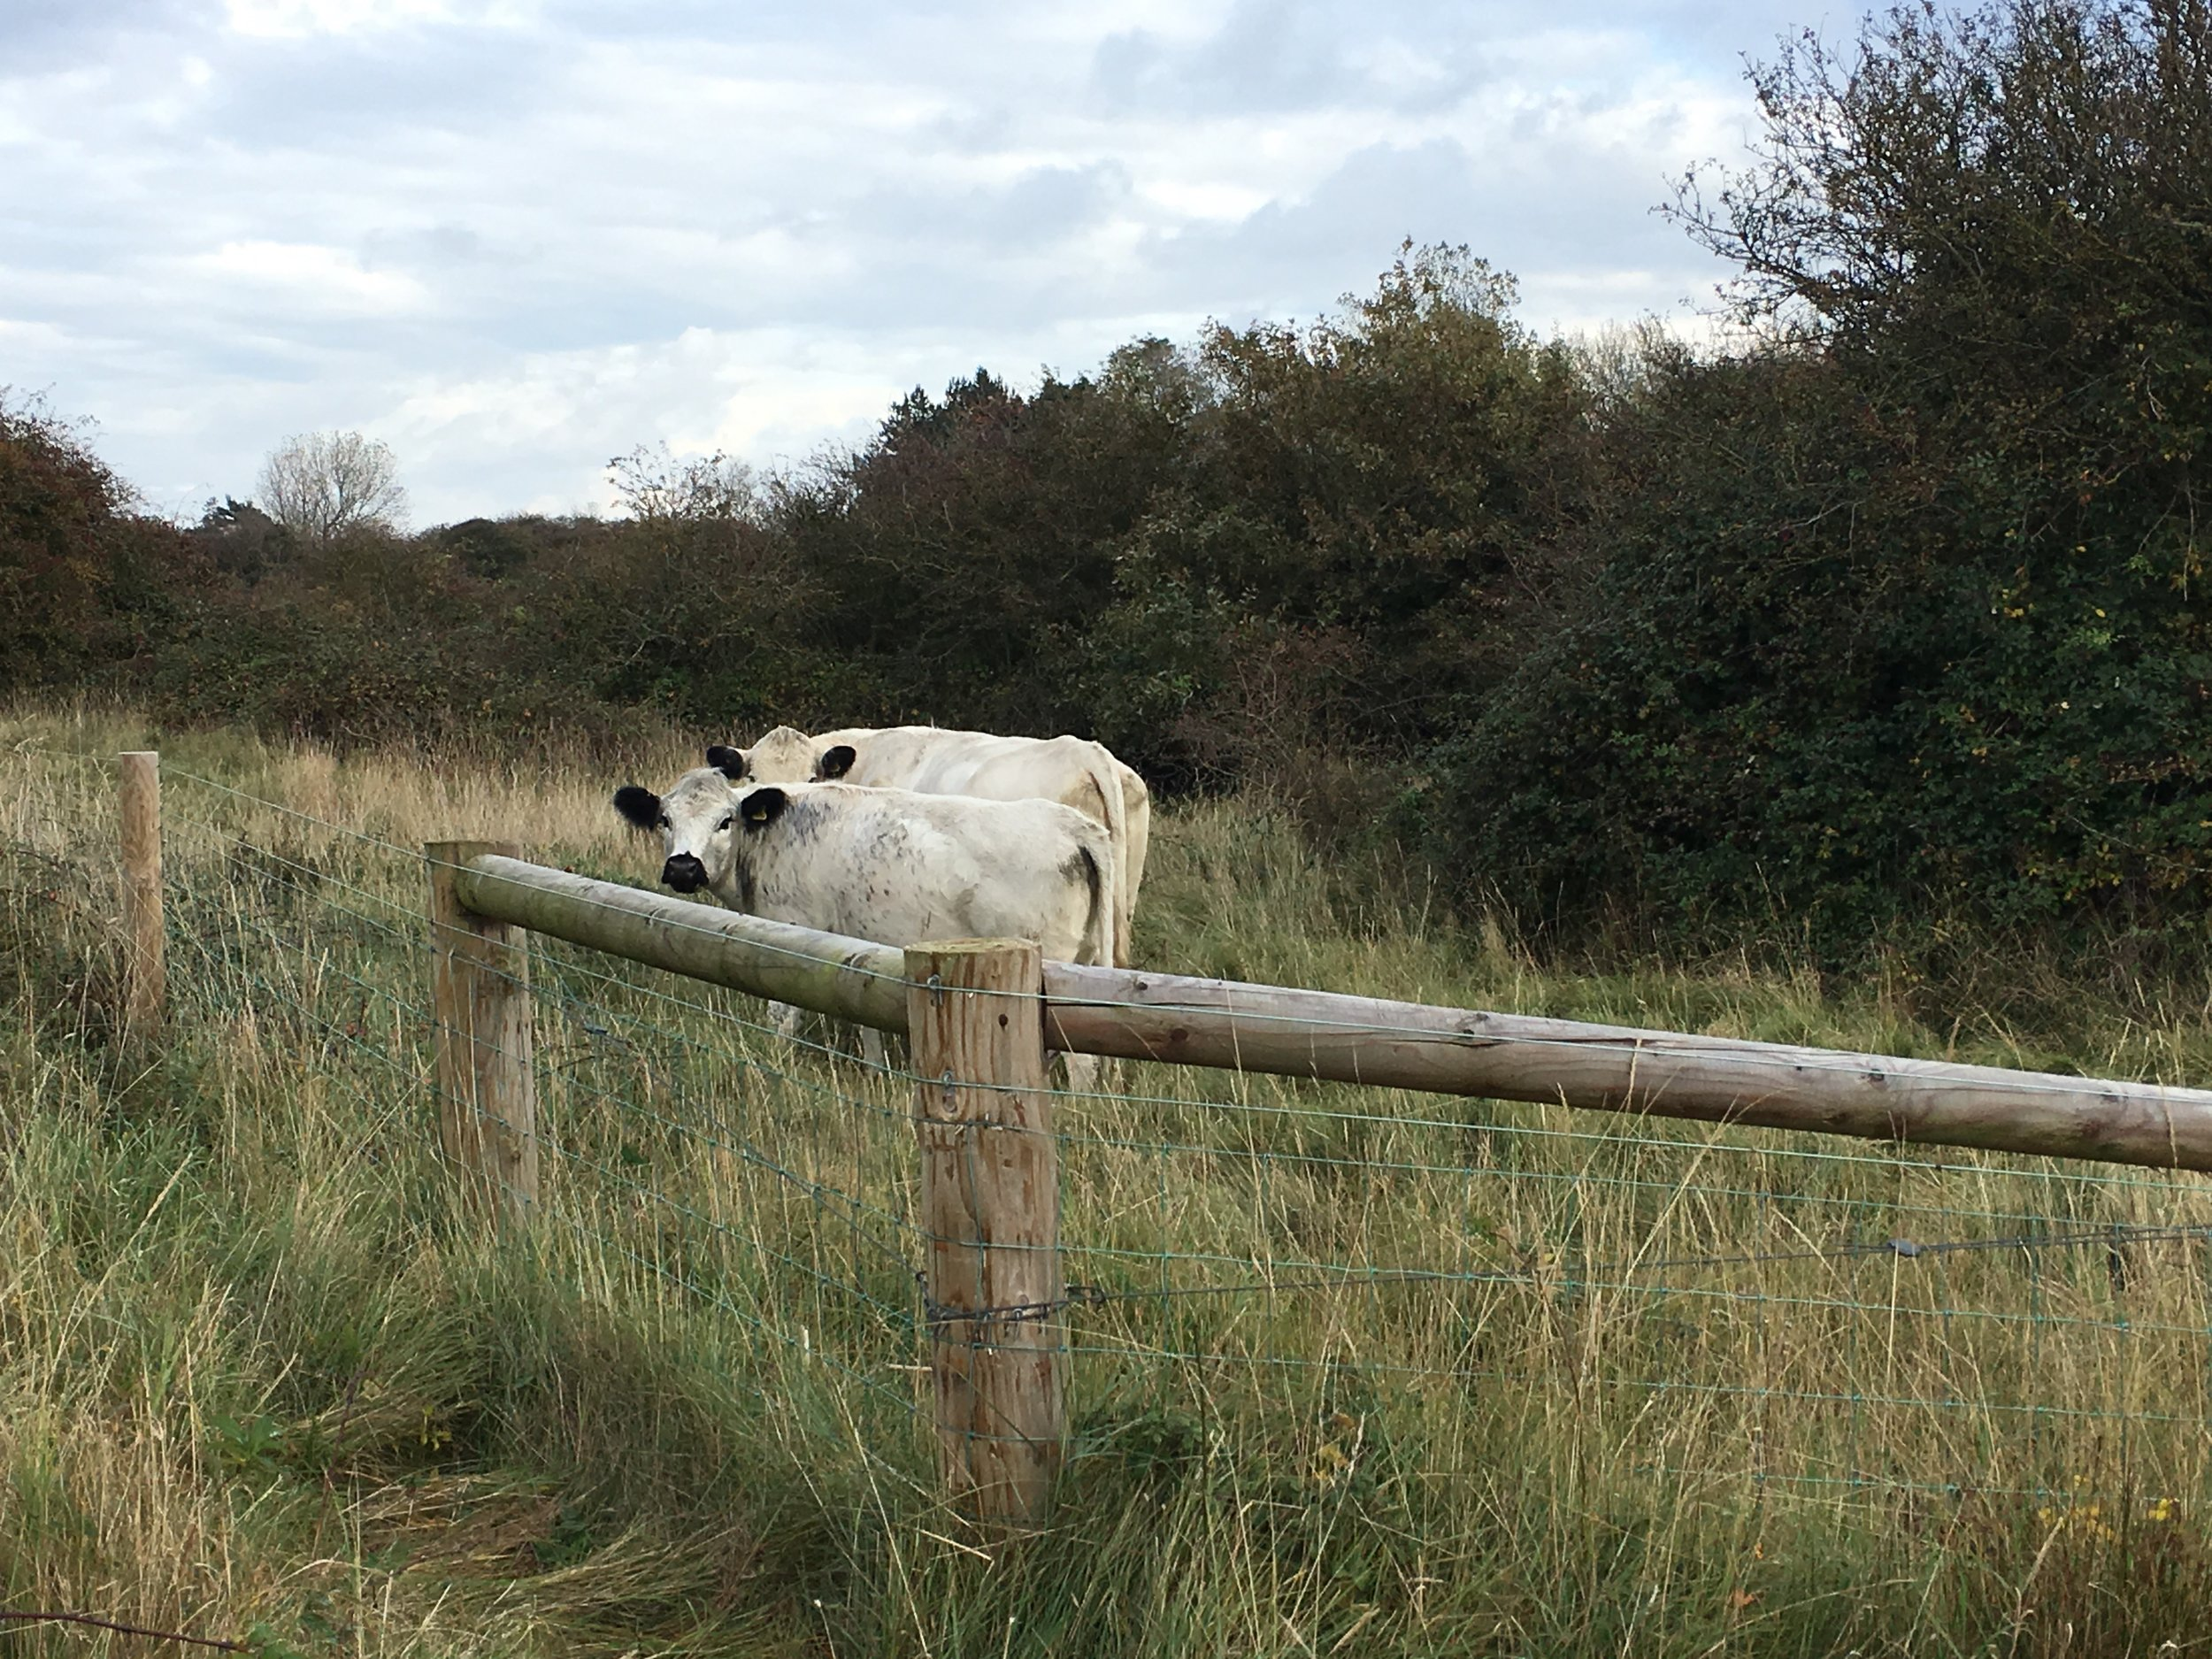 Our fencing provides a safe environment for cattle grazing on Holme Nature reserve